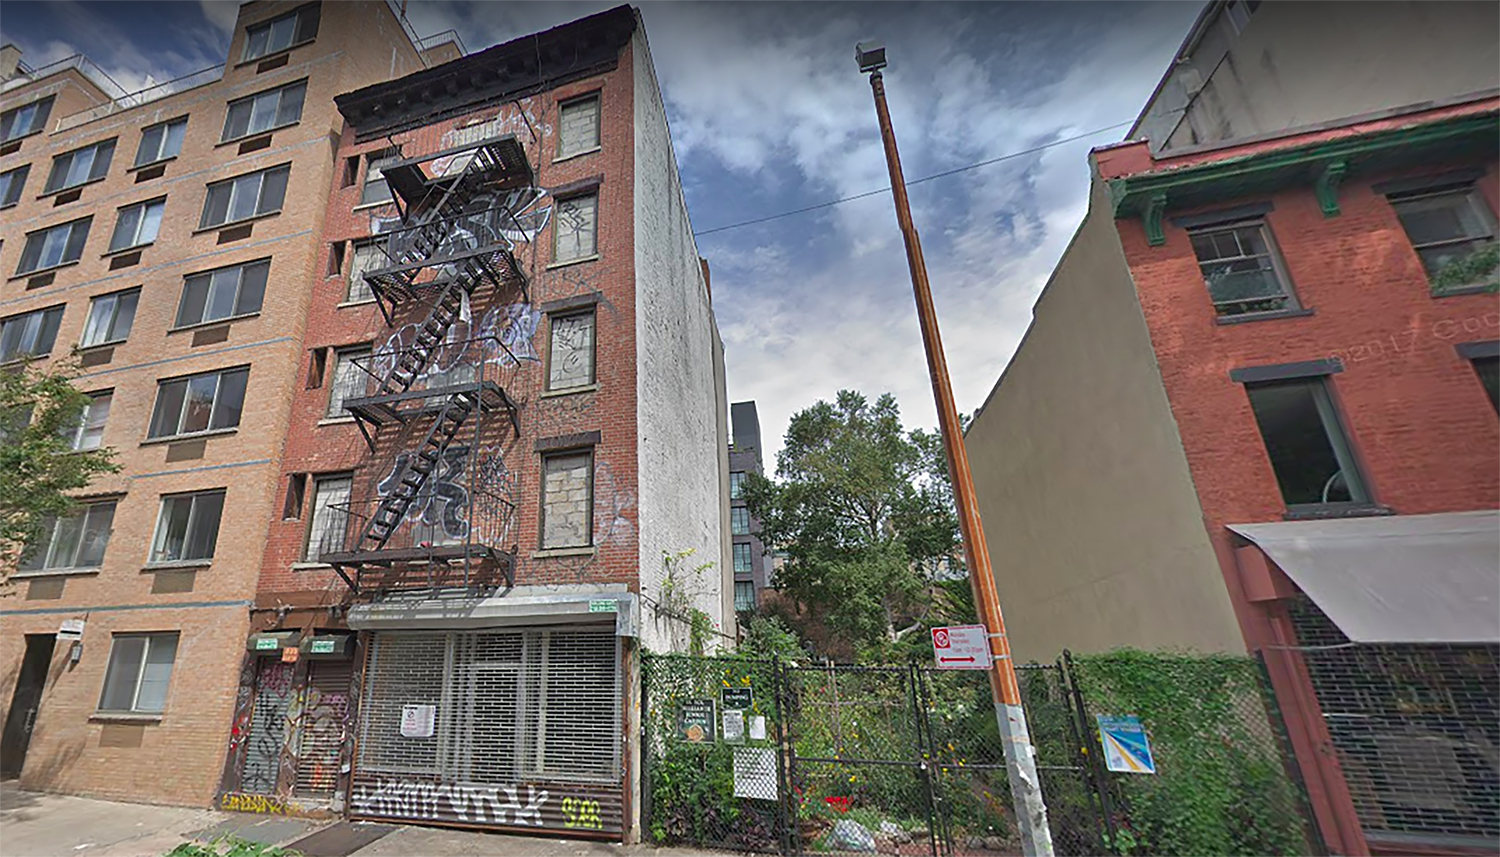 535 East 12th Street in the East Village, Manhattan